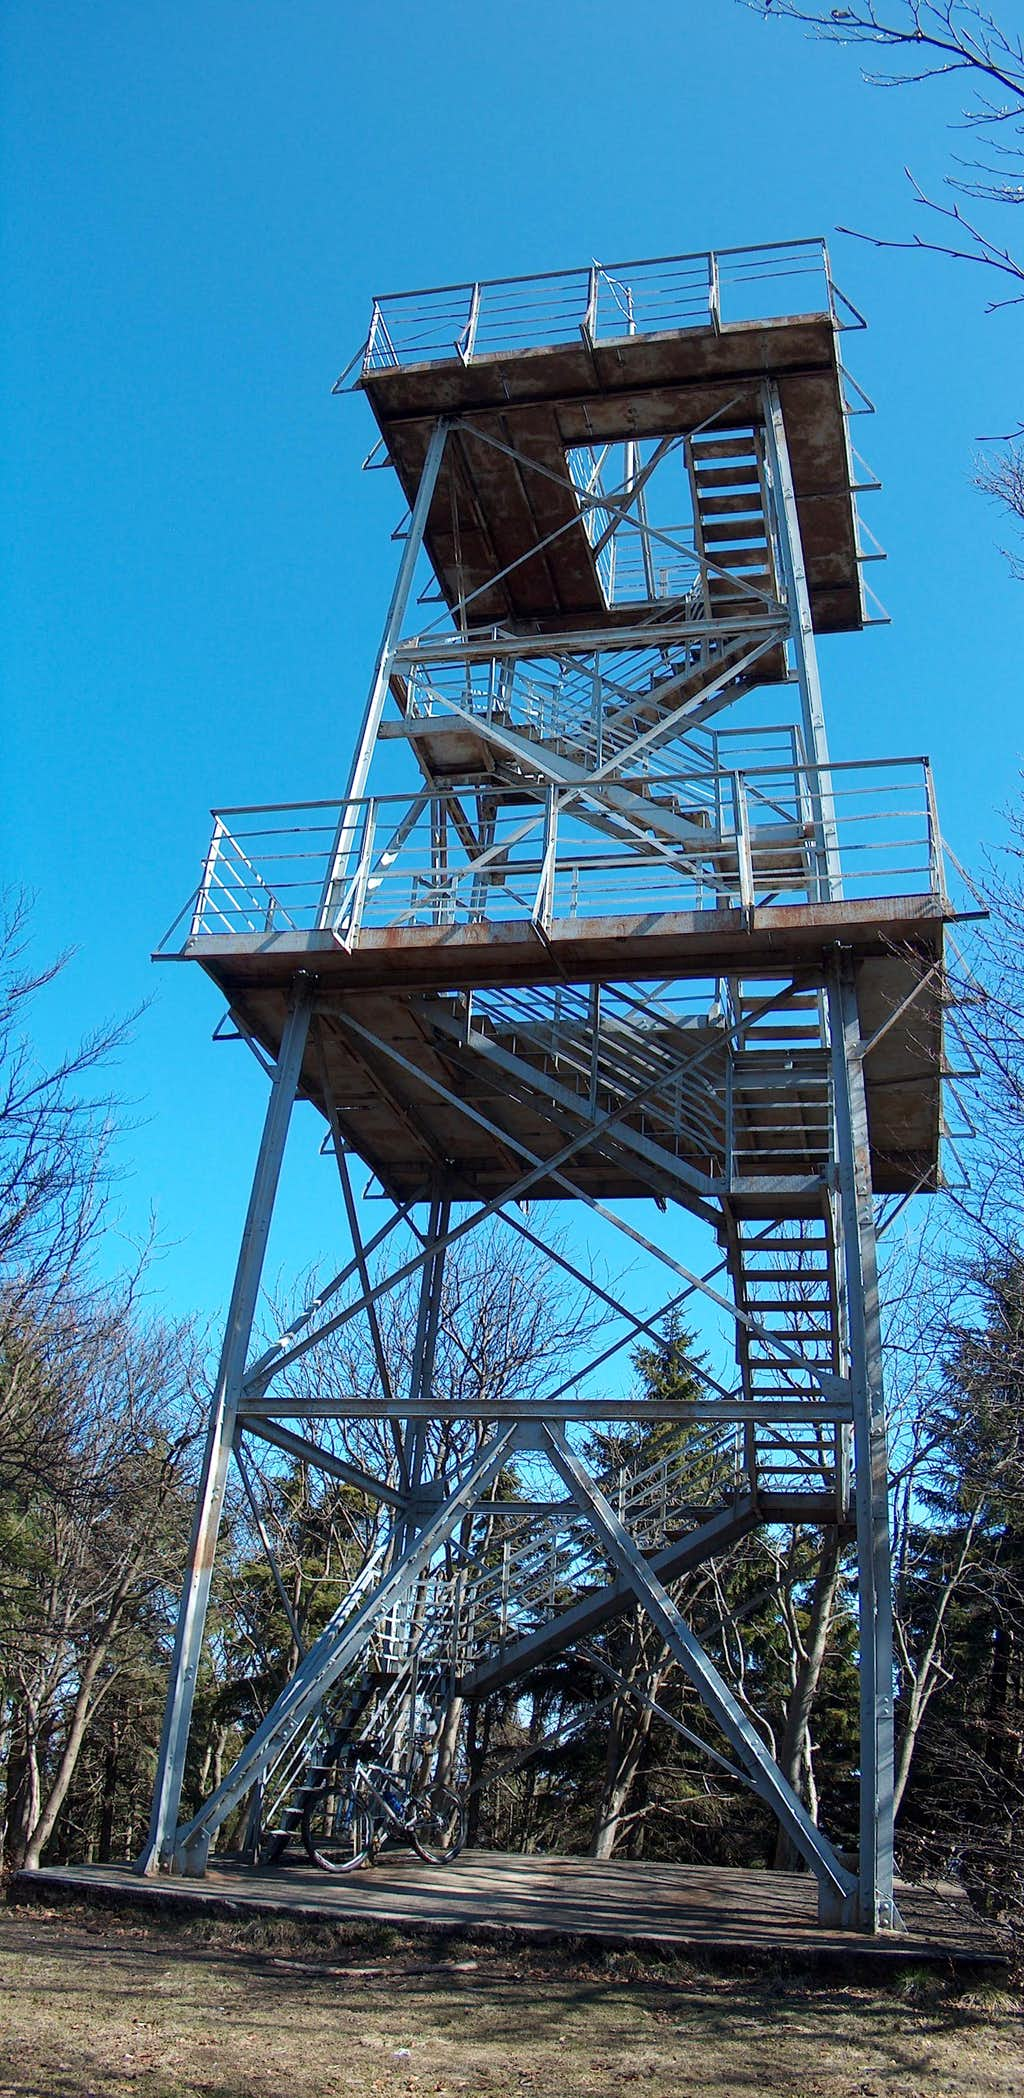 The kalenica Outlook tower